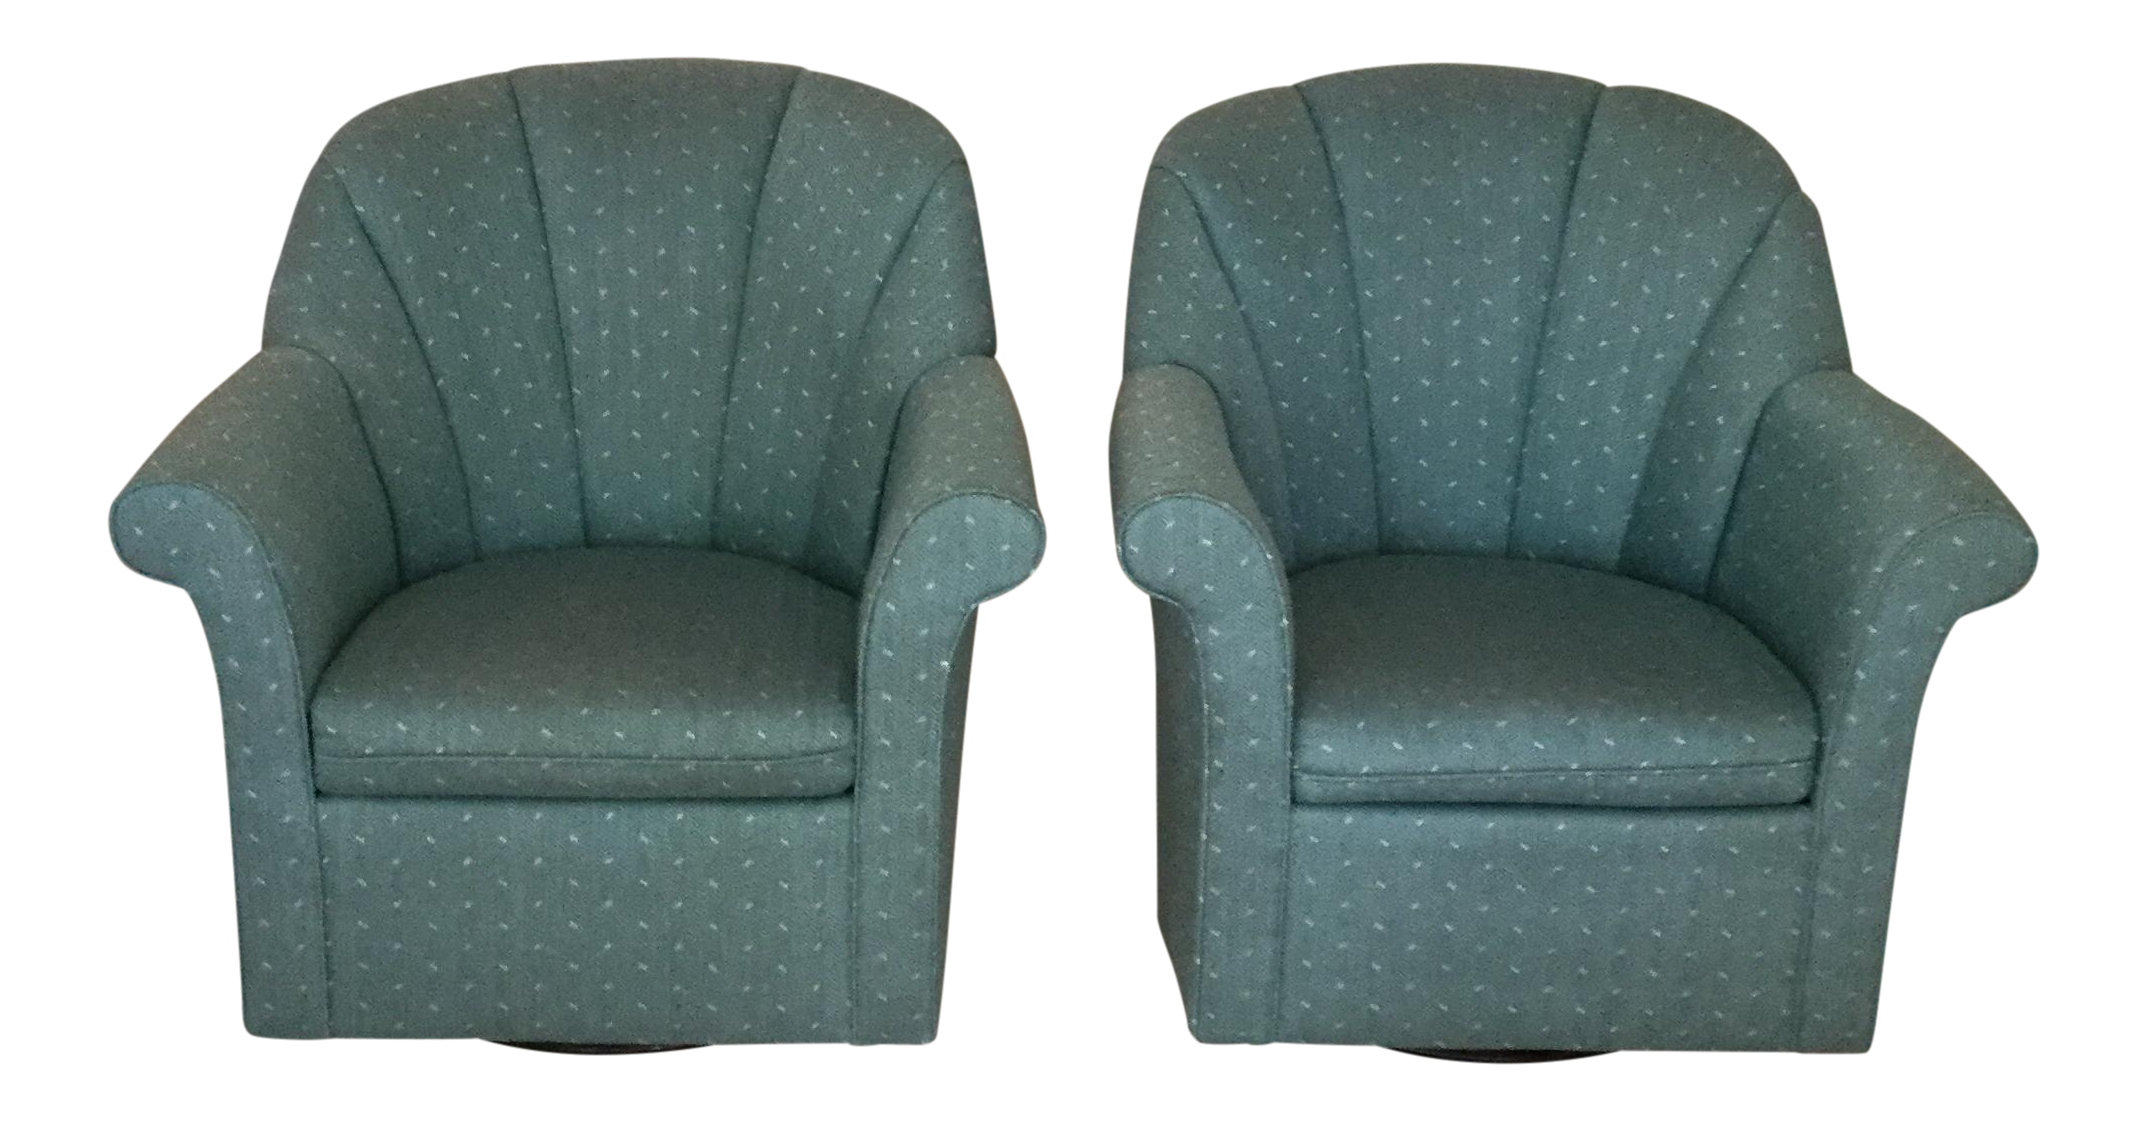 Upholstered Swivel Rocking Chairs A Pair Chairish